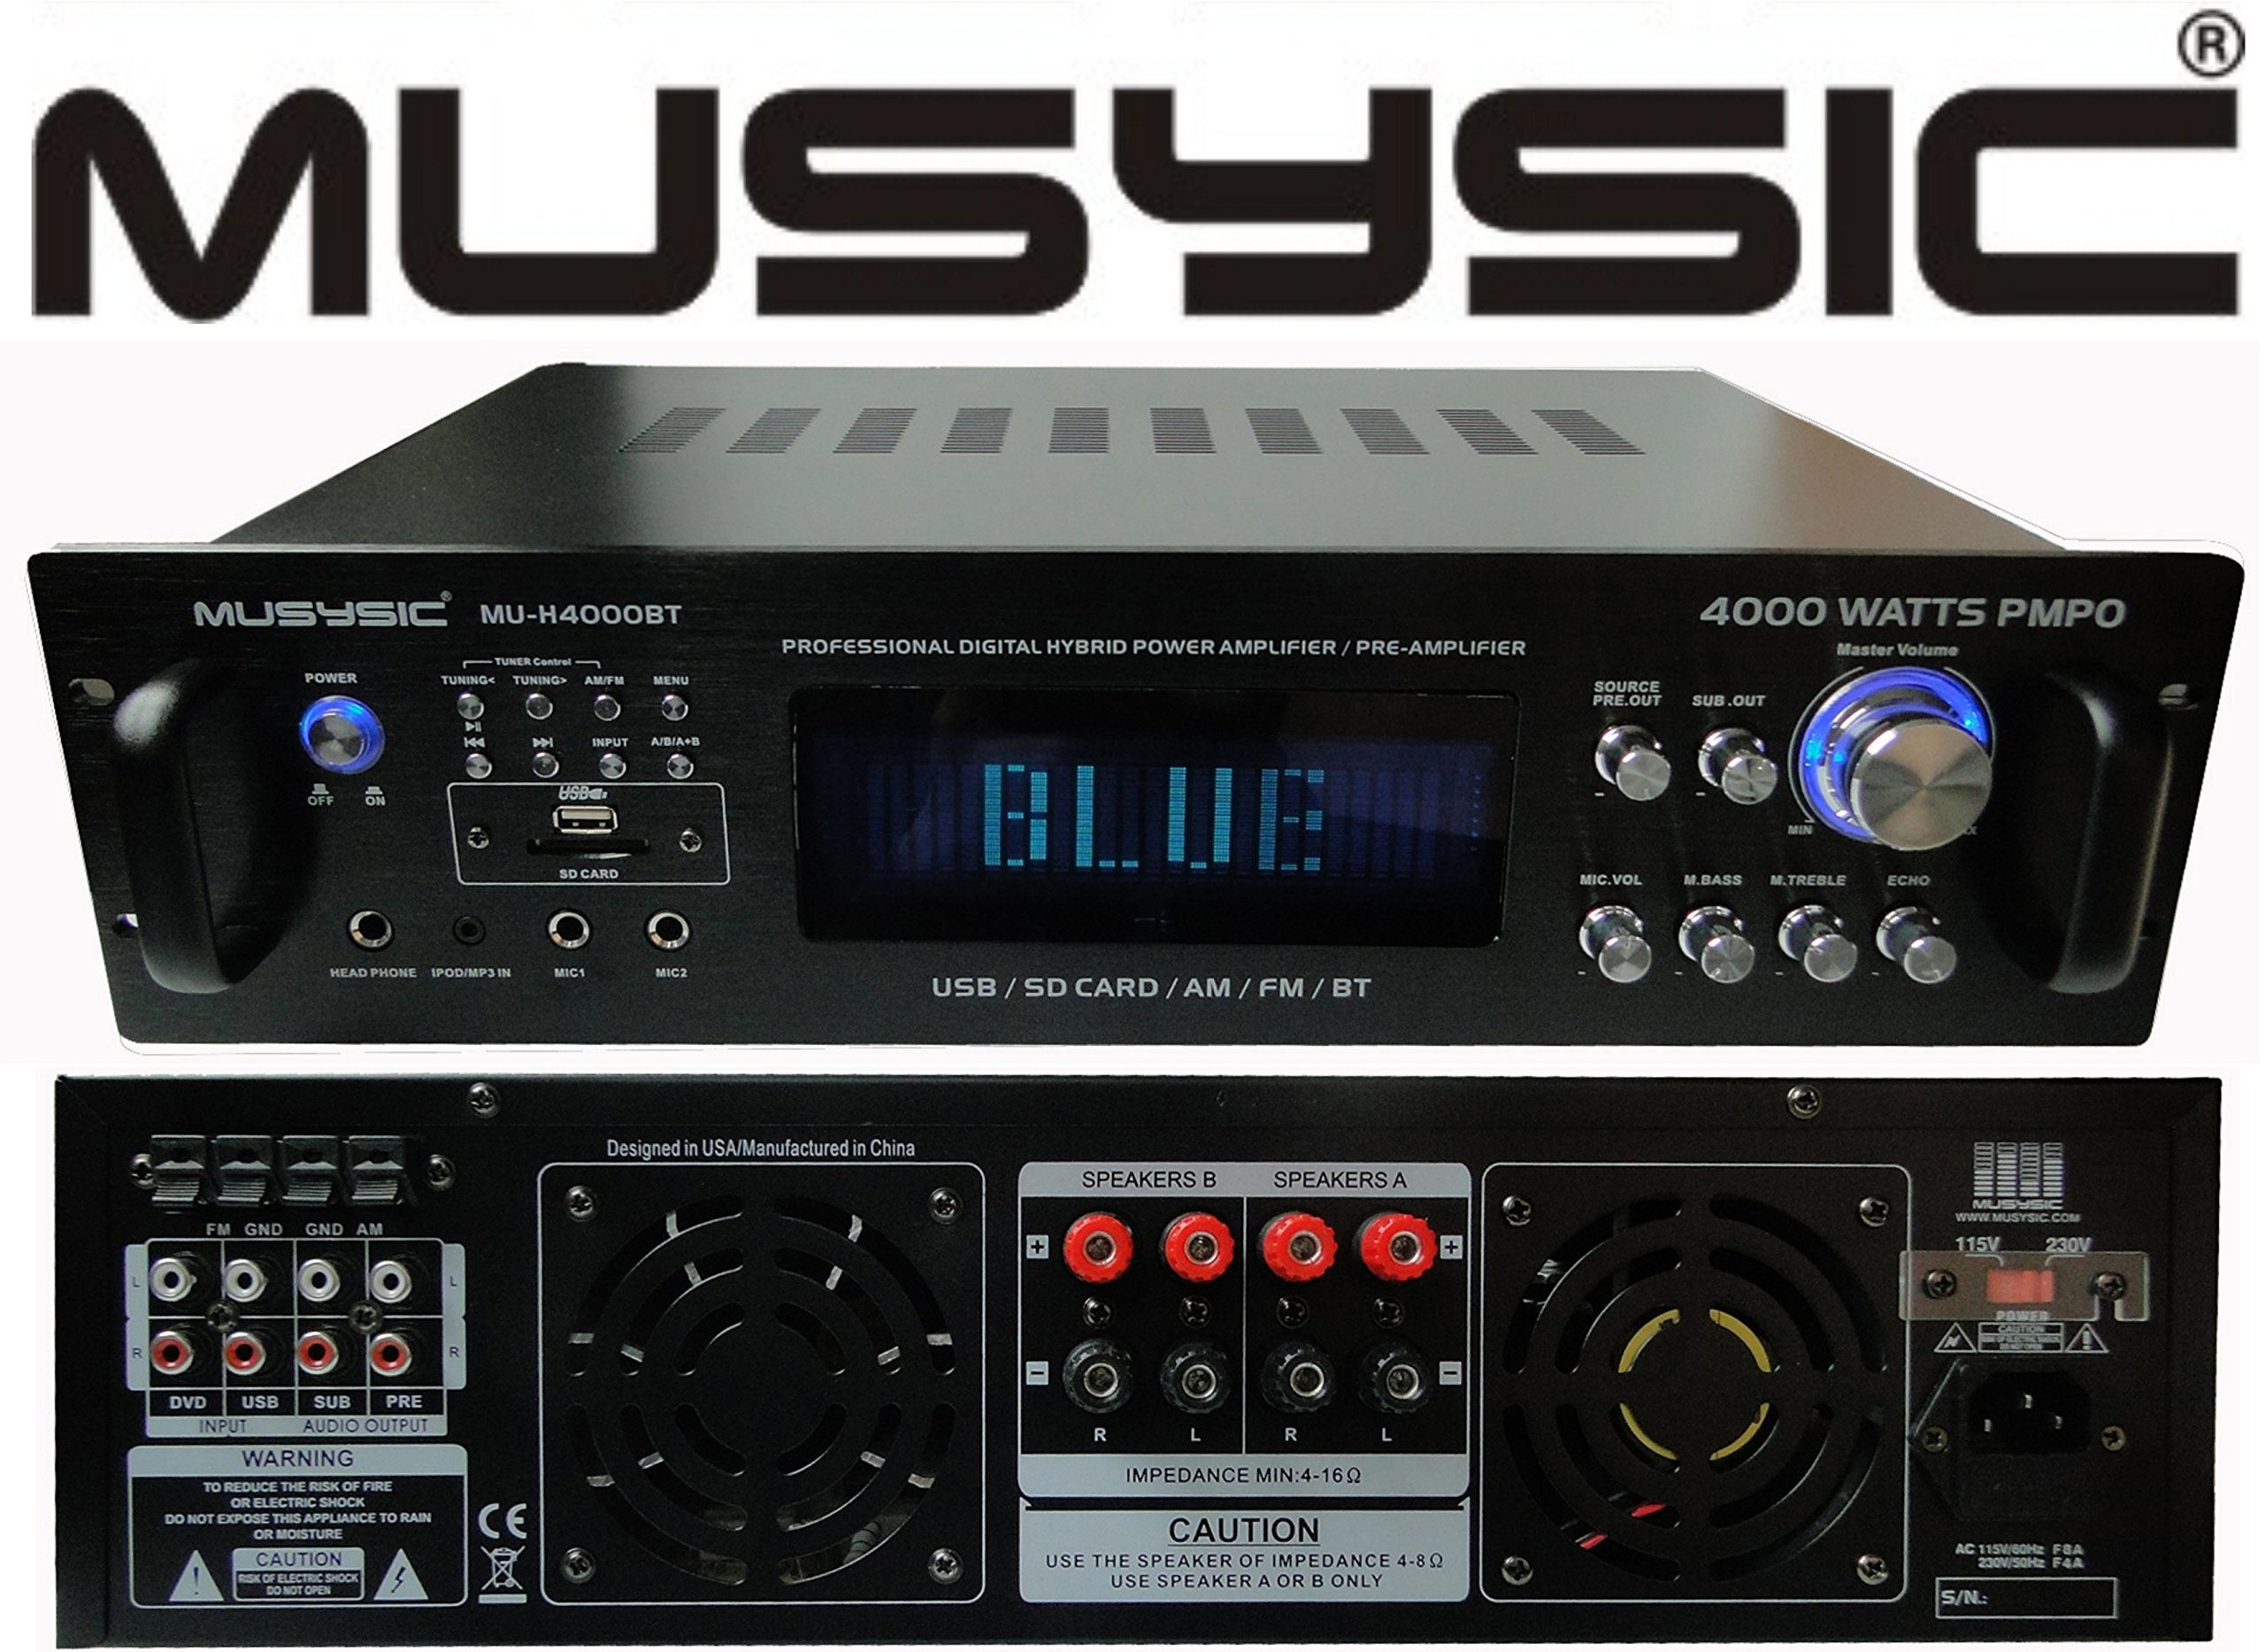 Professional 4000 Watts Hybrid Power Amplifier / Pre-Amplifier / Receiver Bluetooth AM/FM Tuner USB/SD Slot MP3 / iPod Input MU-H4000BT by MUSYSIC